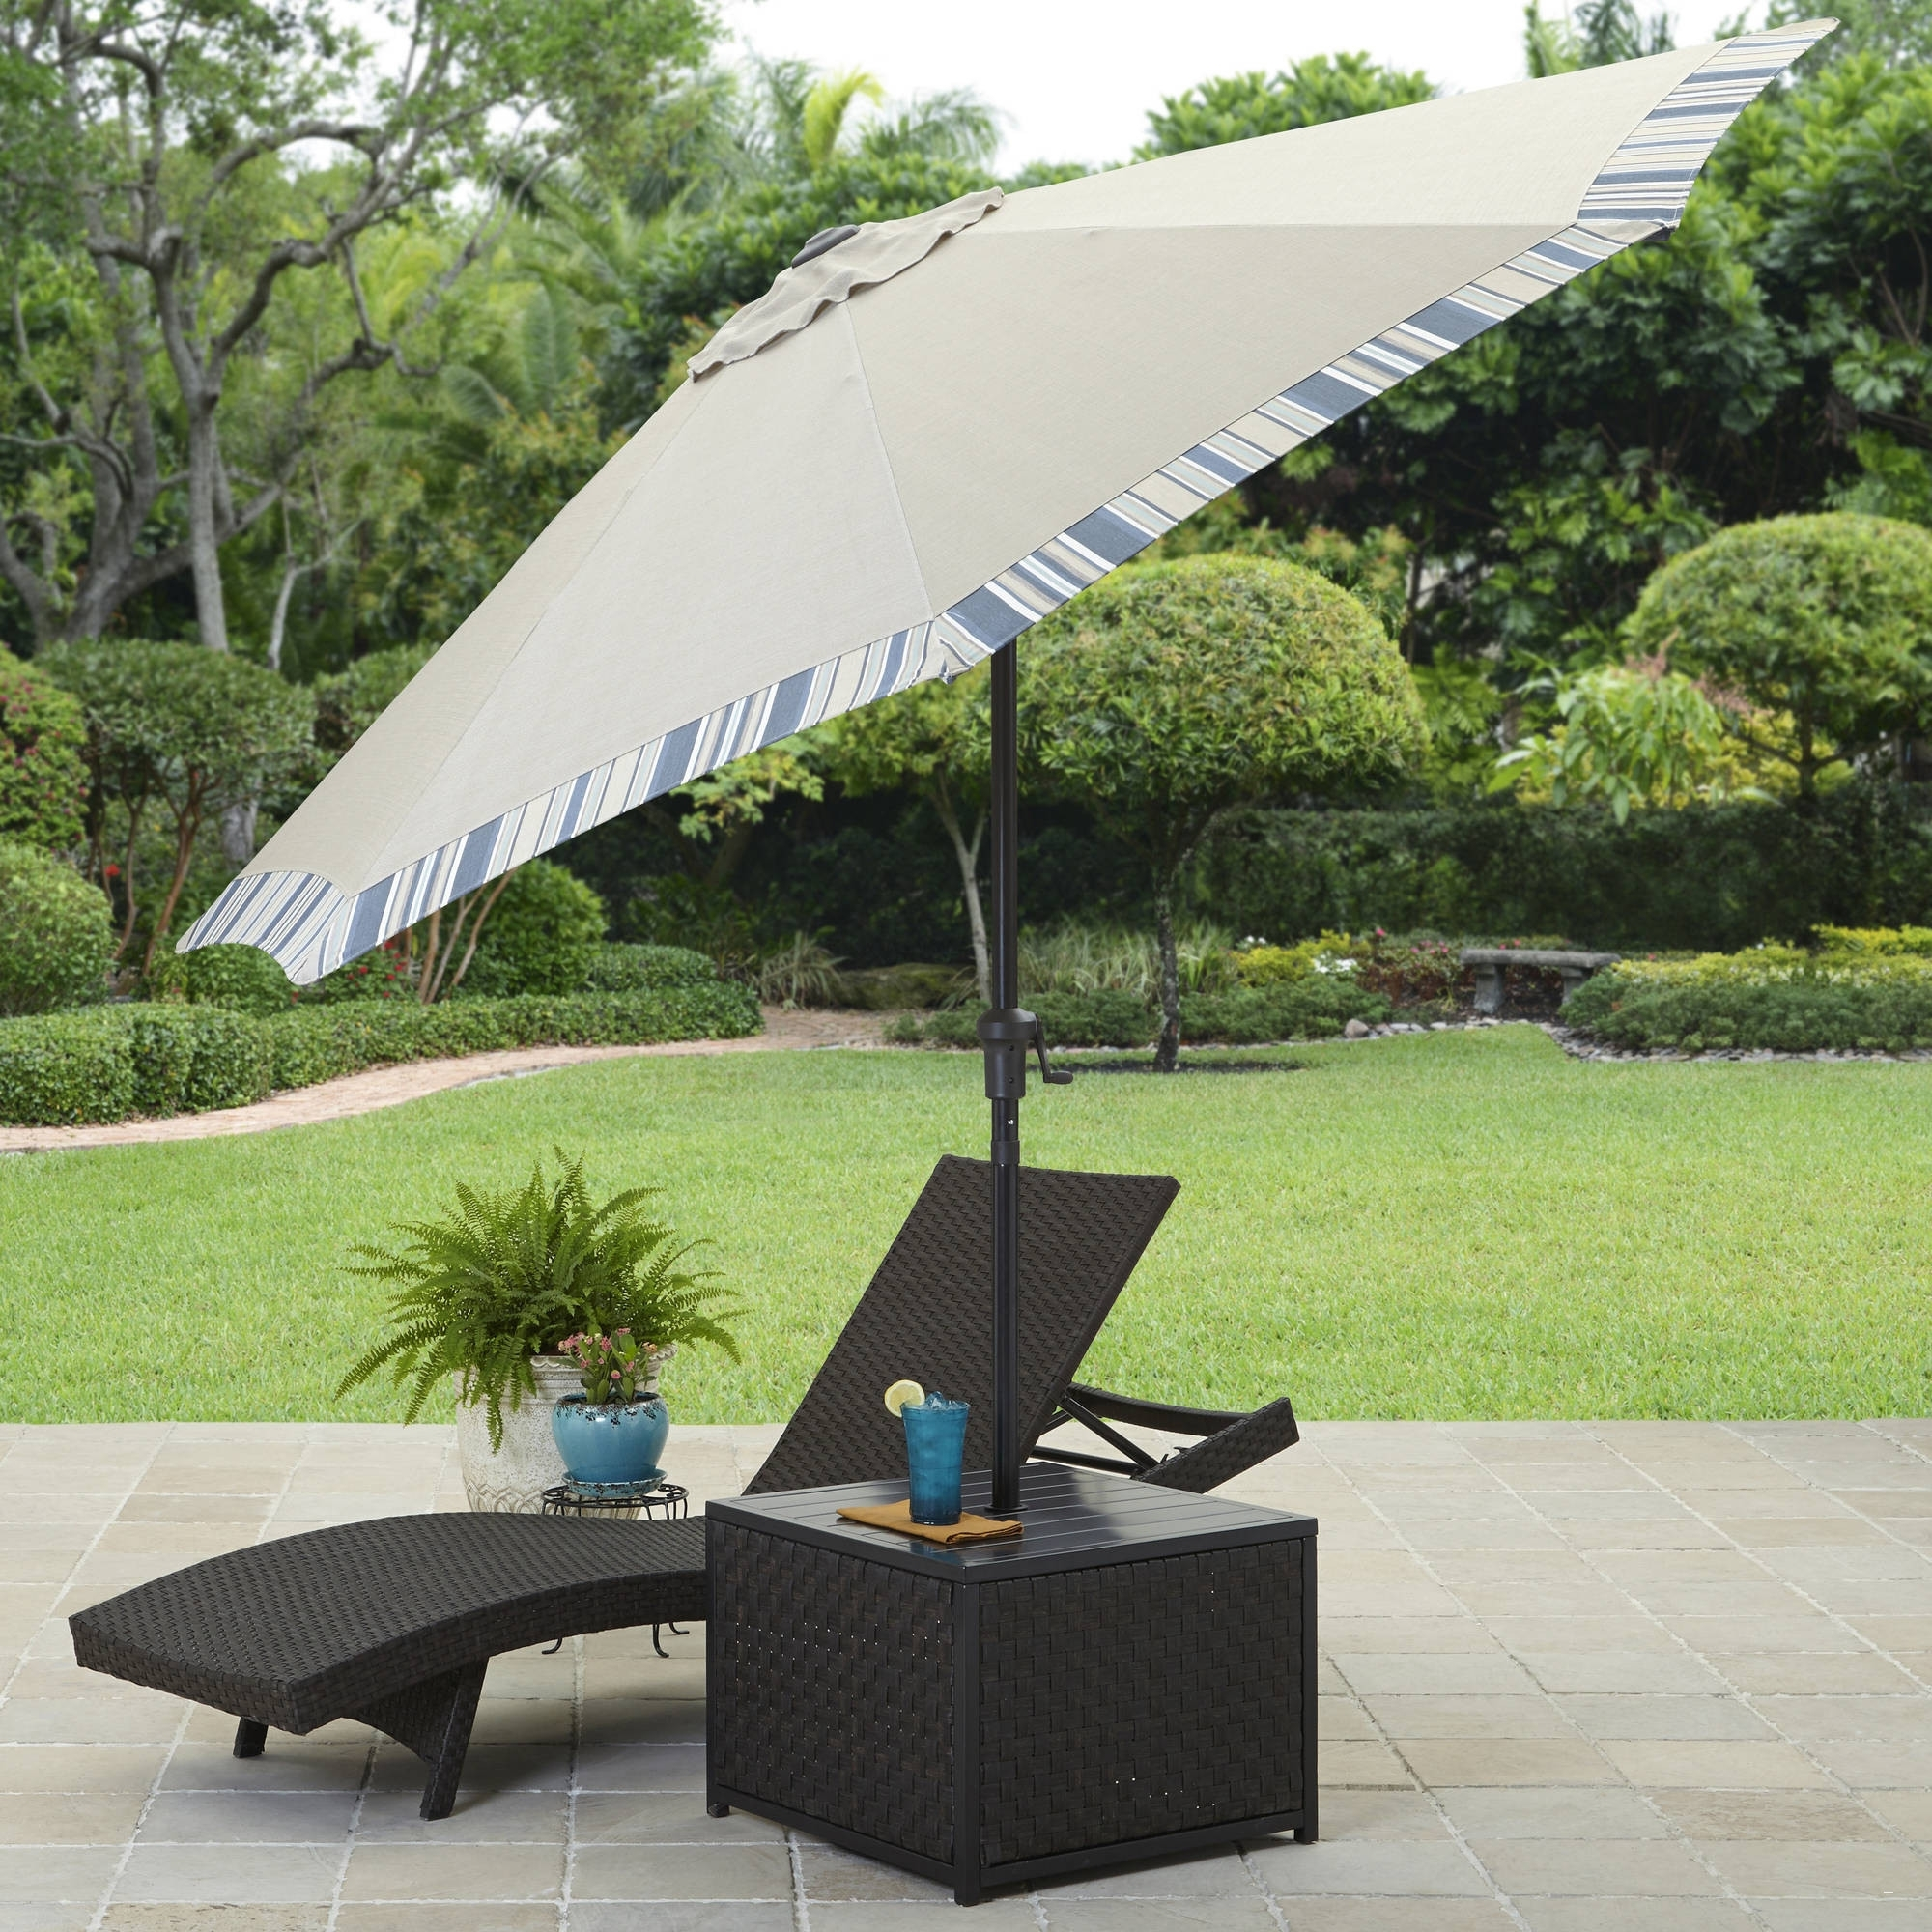 Fashionable Walmart Patio Umbrellas With Regard To Walmart Patio Umbrellas – Lovely Patio Umbrella Table Luxury Patio (View 9 of 20)